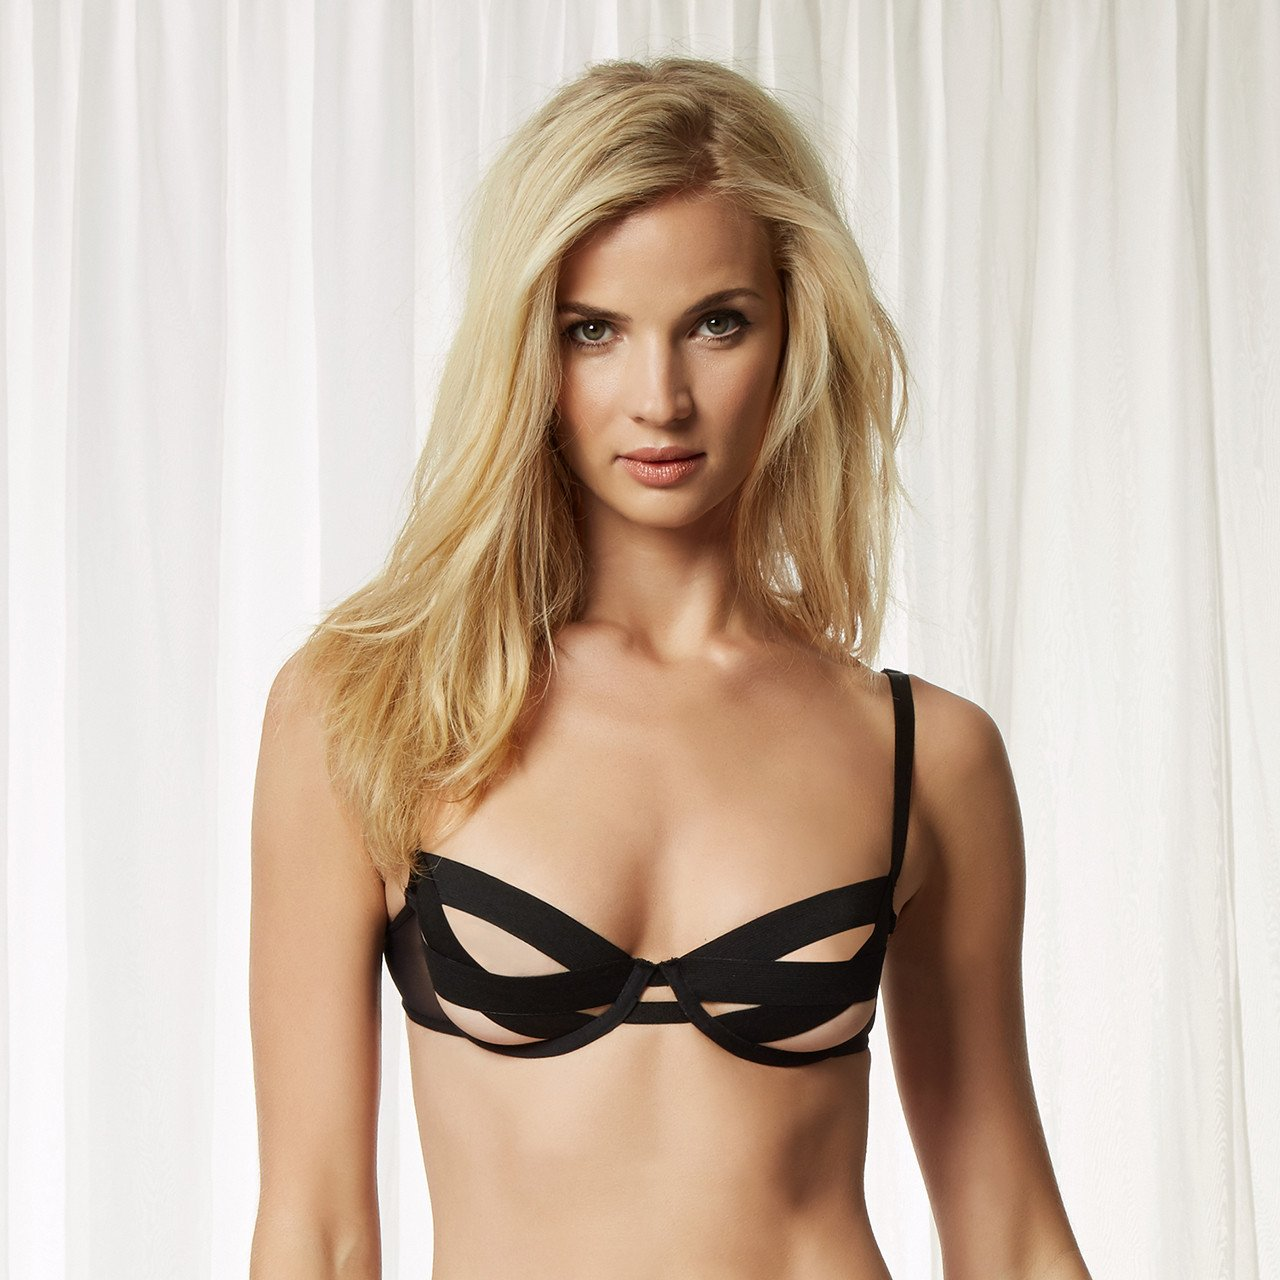 Details about  /Bluebella More Hecate Bra Black Size 36DD Underwired Balcony Satin Lace 40782